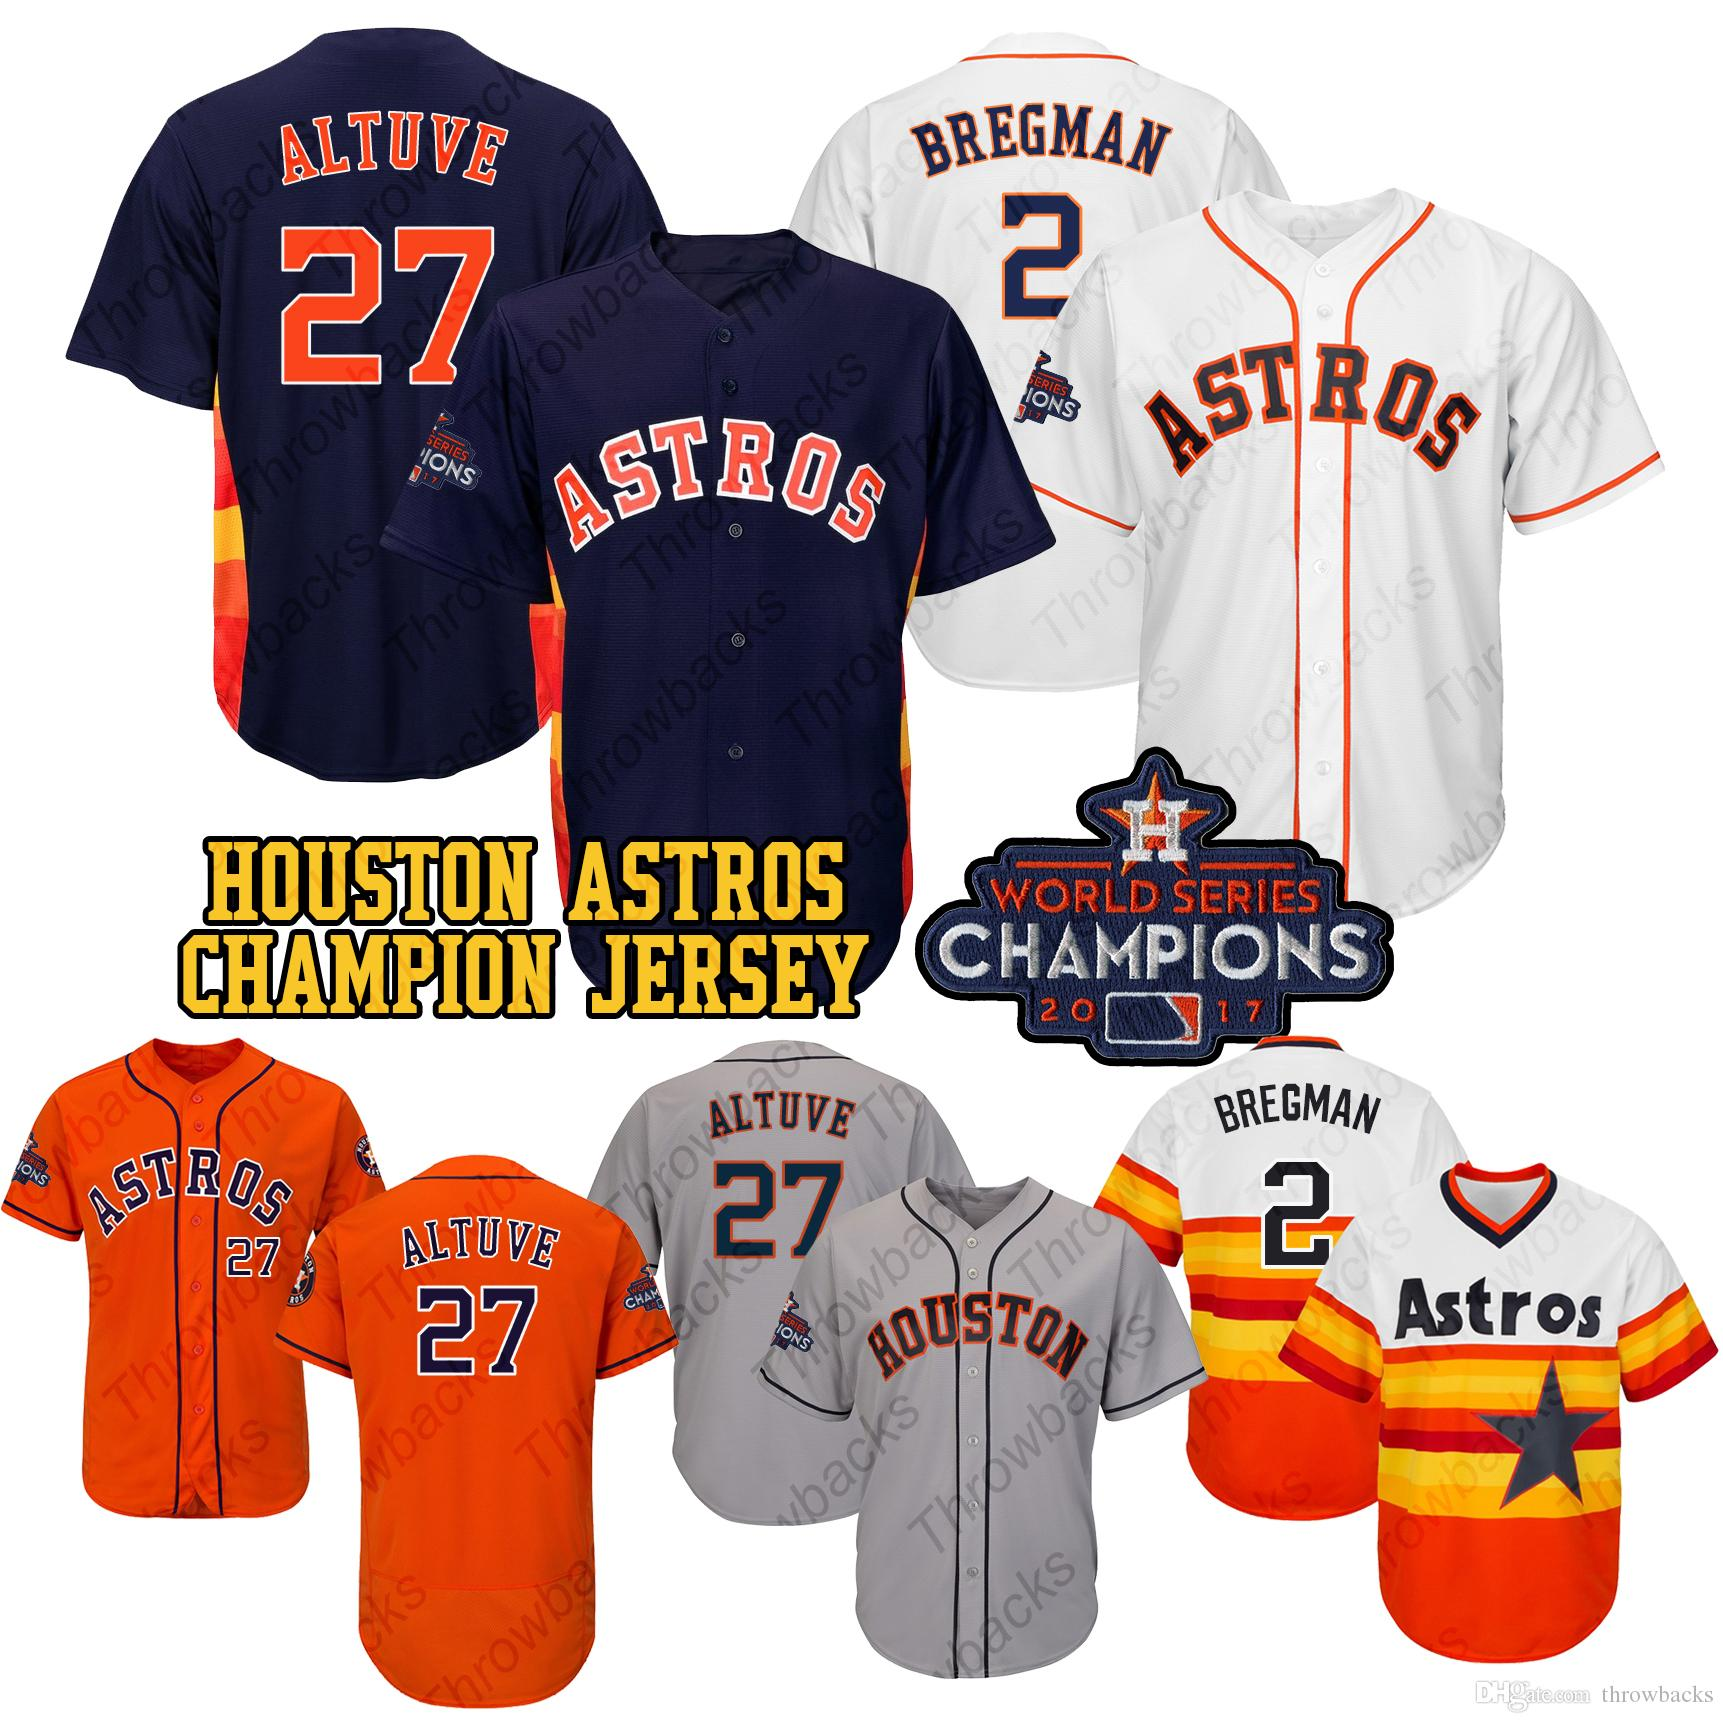 cfb7458b 2019 Houston 2017 Astros Jersey Josh Reddick Jose Altuve Alex Bregman  Michael Brantley Jeff Bagwell Champions Baseball Jerseys From Throwbacks,  ...